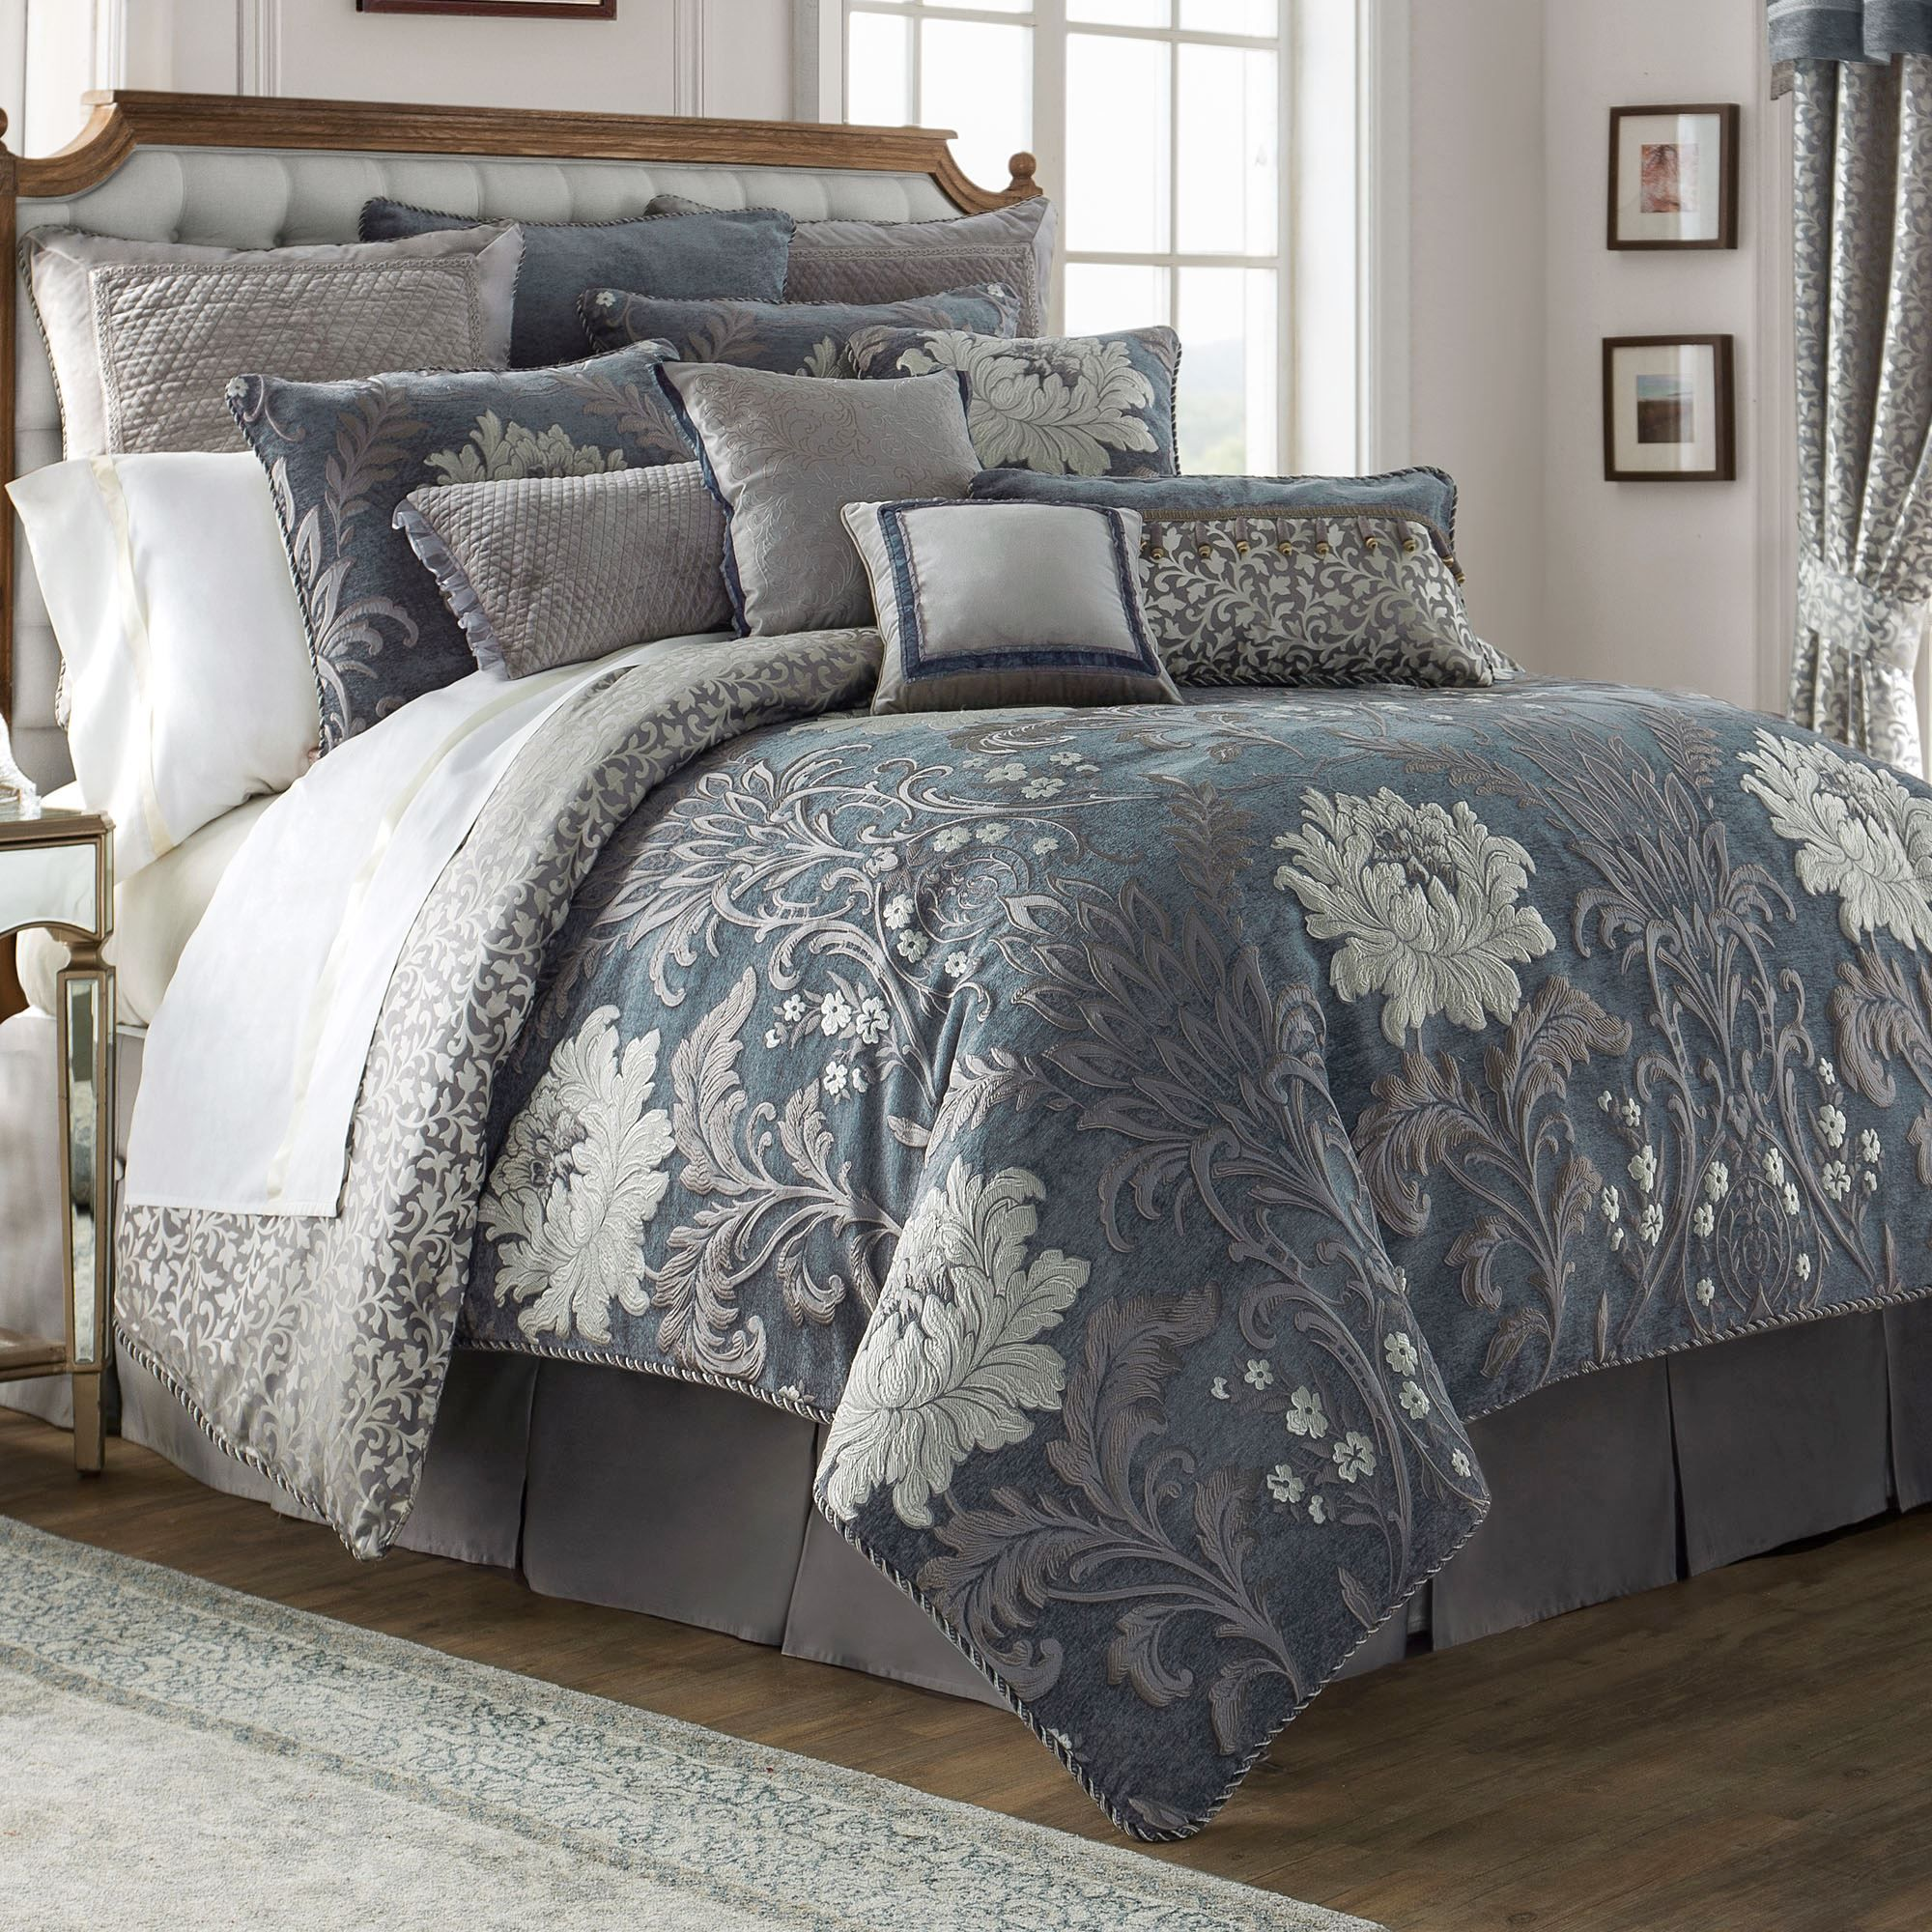 Ansonia Floral Blue Gray Comforter Bedding By Waterford Linens